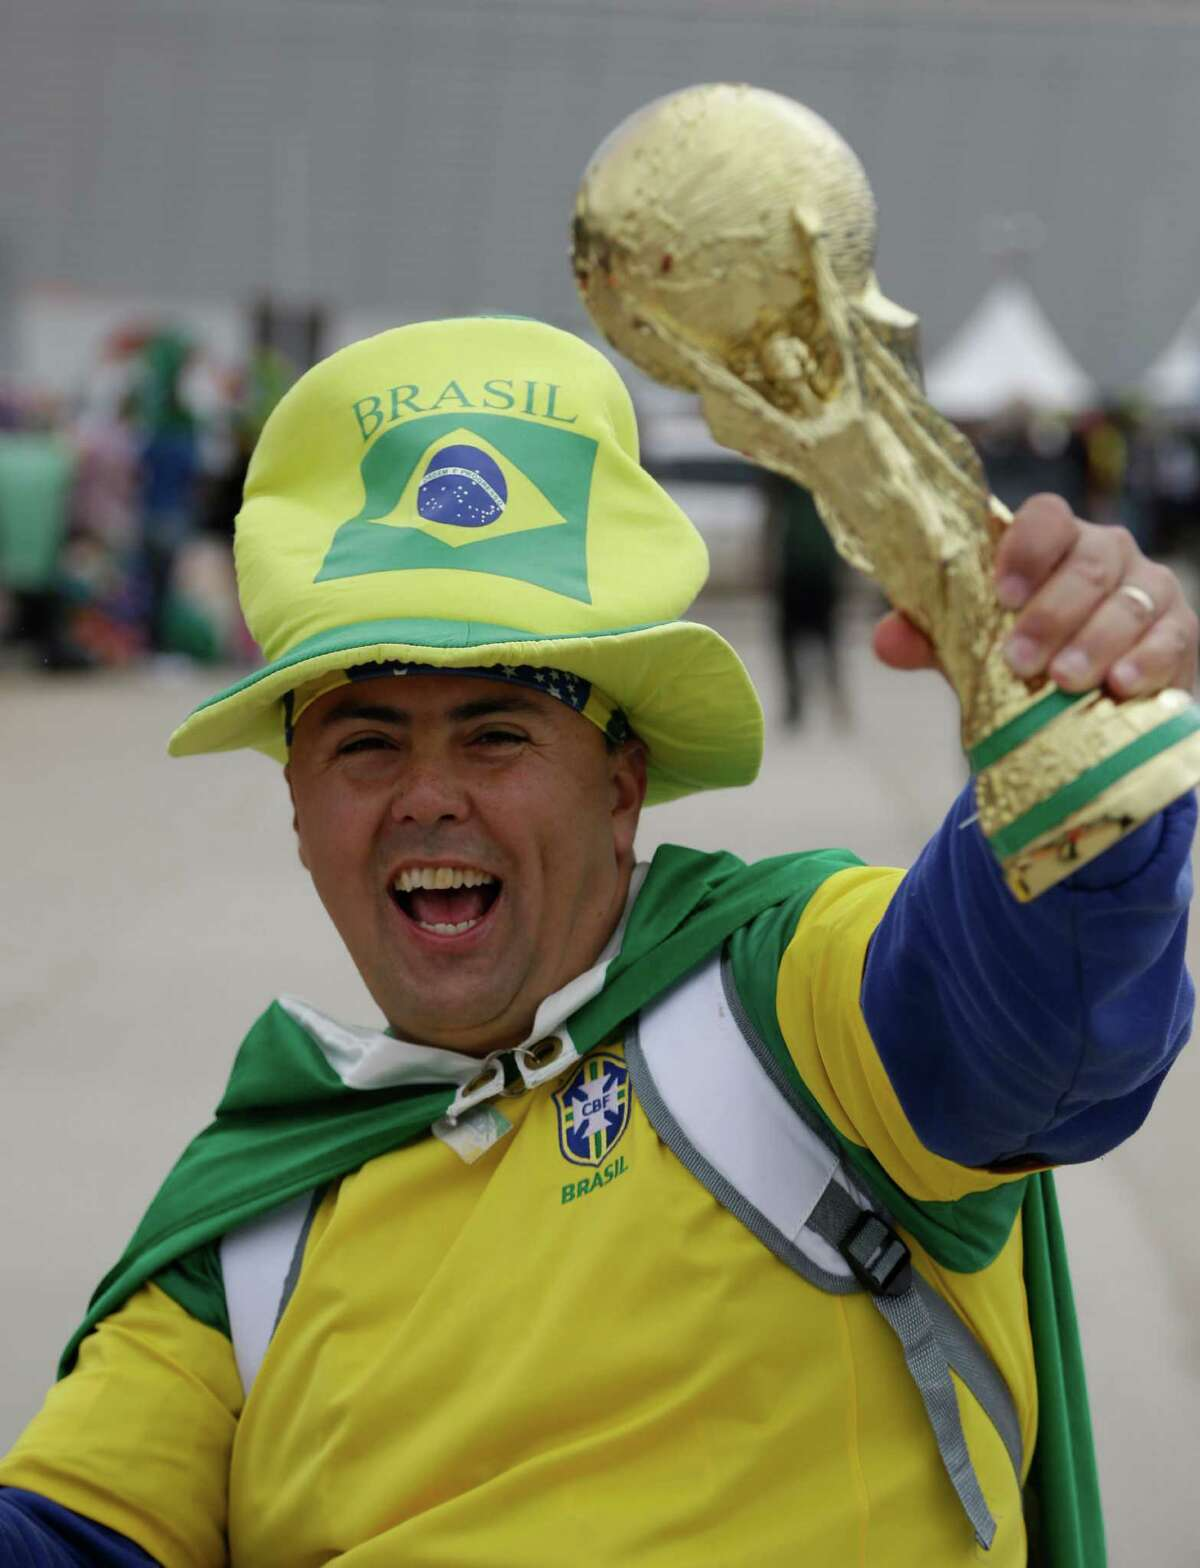 Wish you were in Brazil right now? Try one of these 13 spots around the Alamo City to satisfy your soccer sweet tooth.PHOTO: A Brazilian soccer fan holds a replica of the World Cup trophy one day before the opening World Cup soccer match in Itaquerao Stadium in Sao Paulo, Brazil, Wednesday, June 11, 2014.